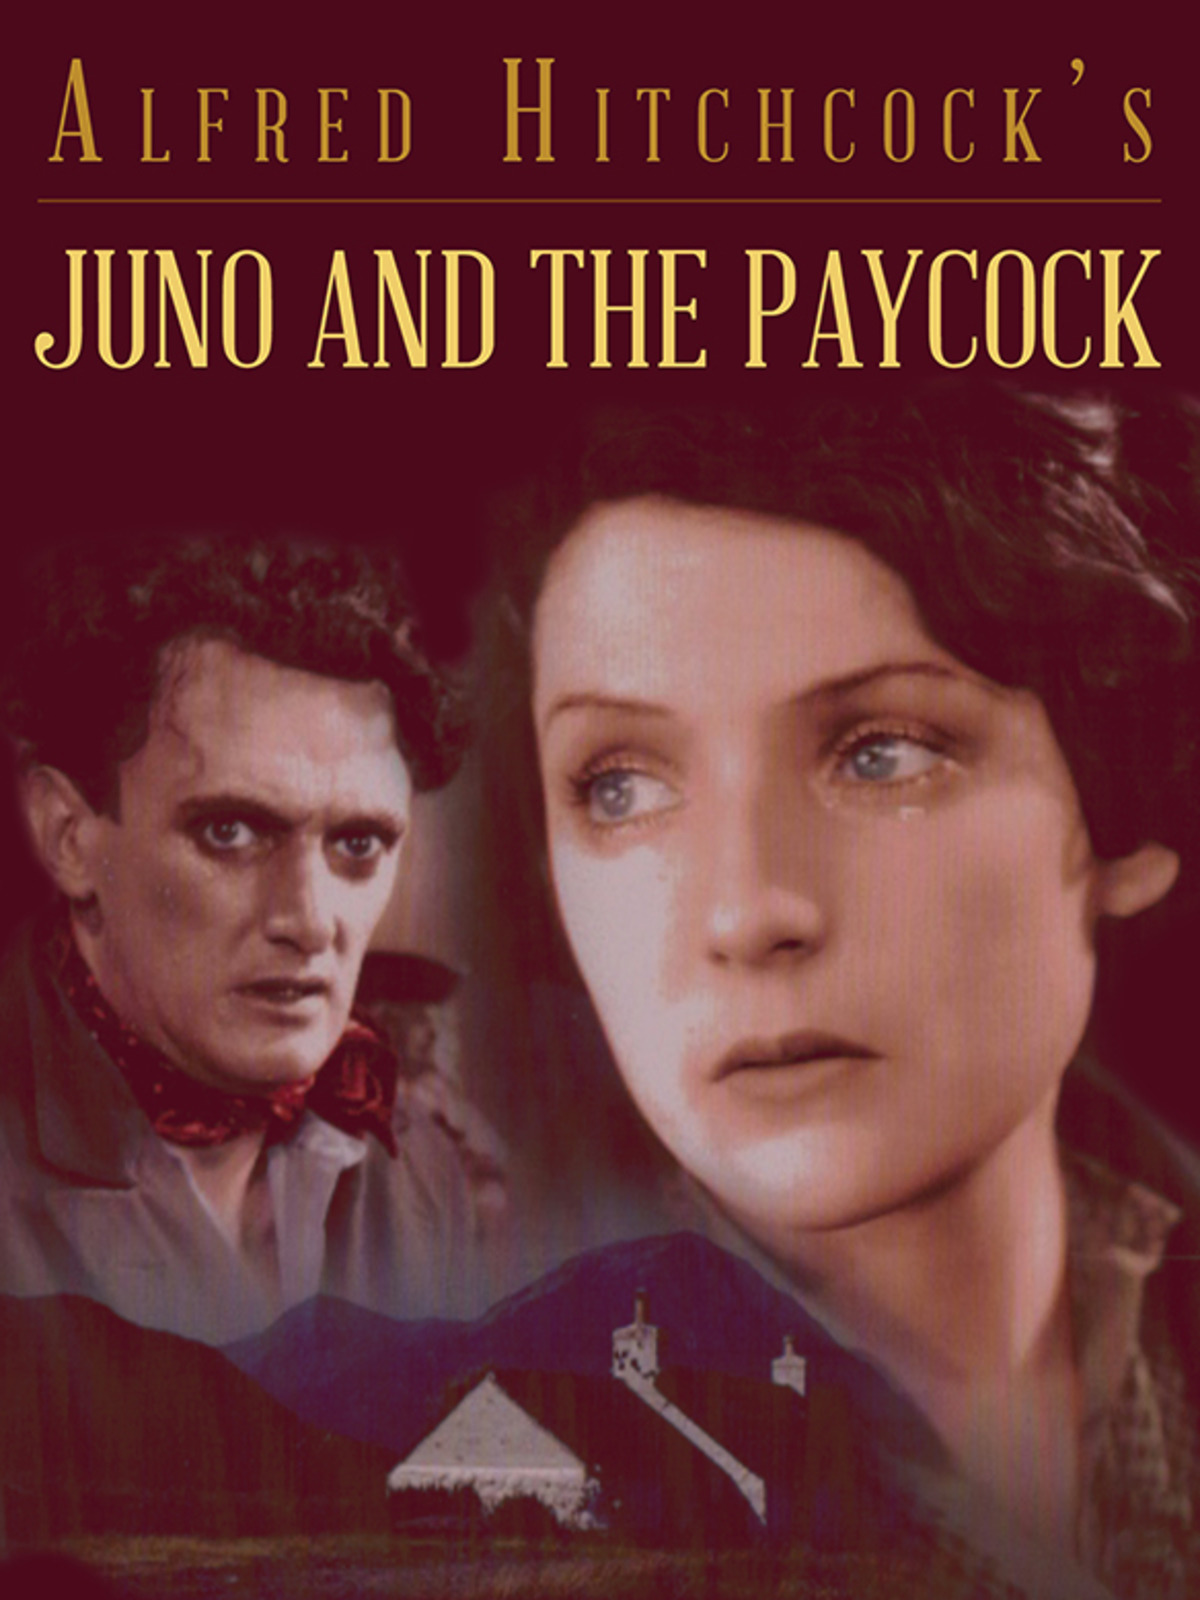 Juno and the Paycock (1930, dir, Alfred Hitchcock) bootleg DVD artwork